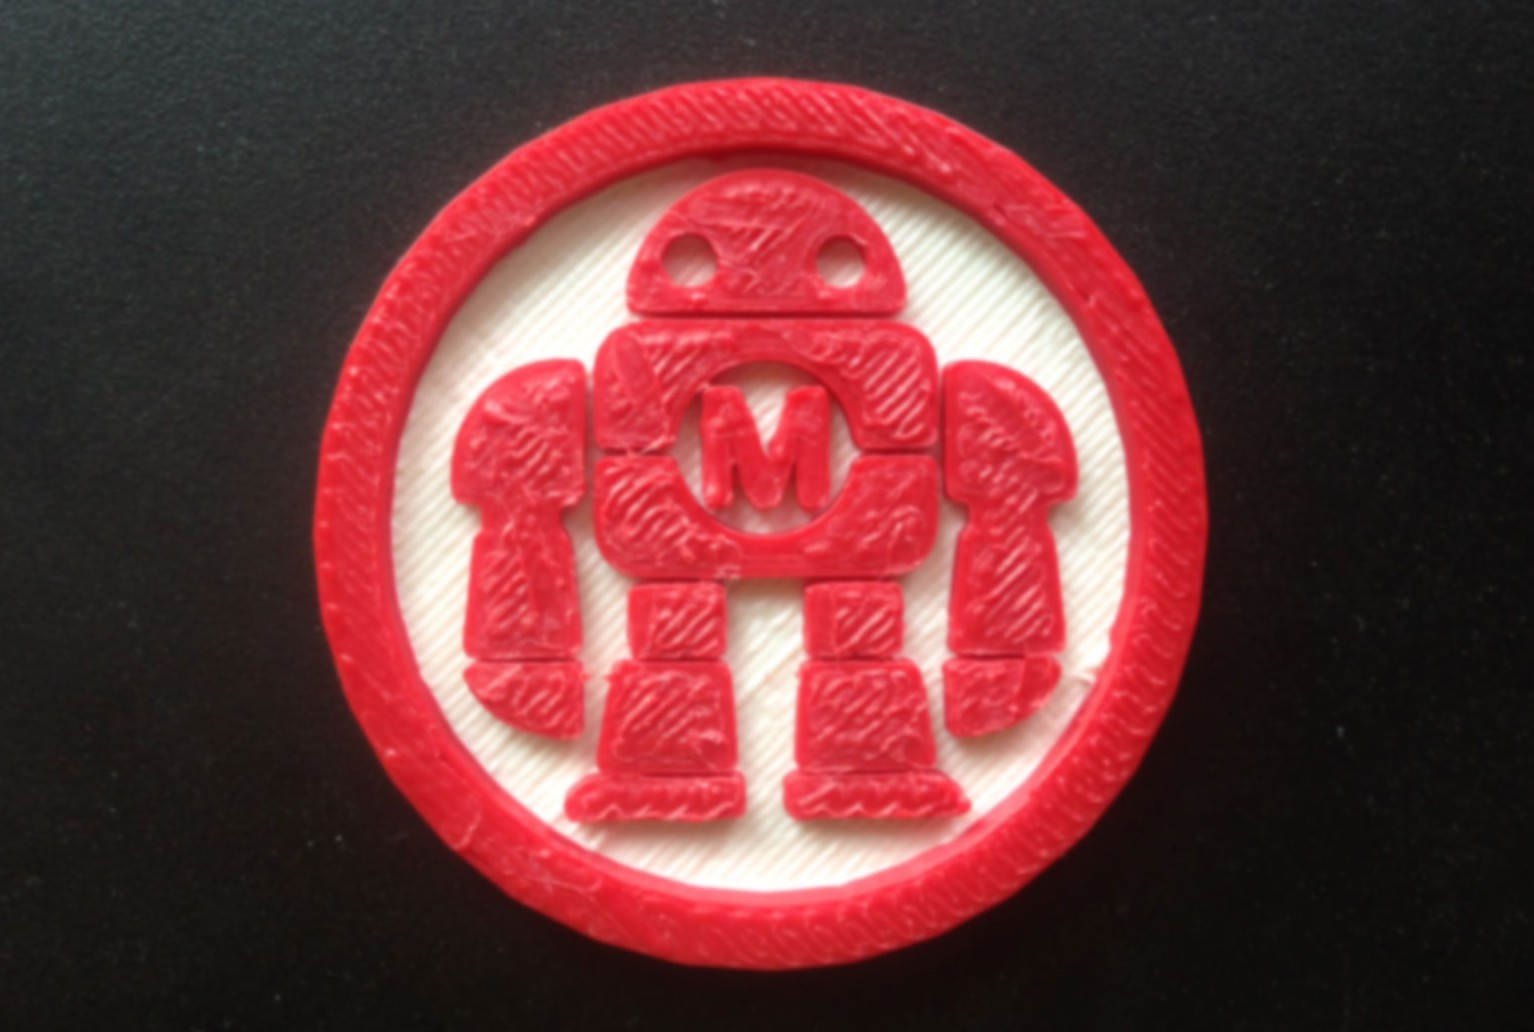 Calling All Austin Makers! SXSW 3D Printed Scavenger Hunt